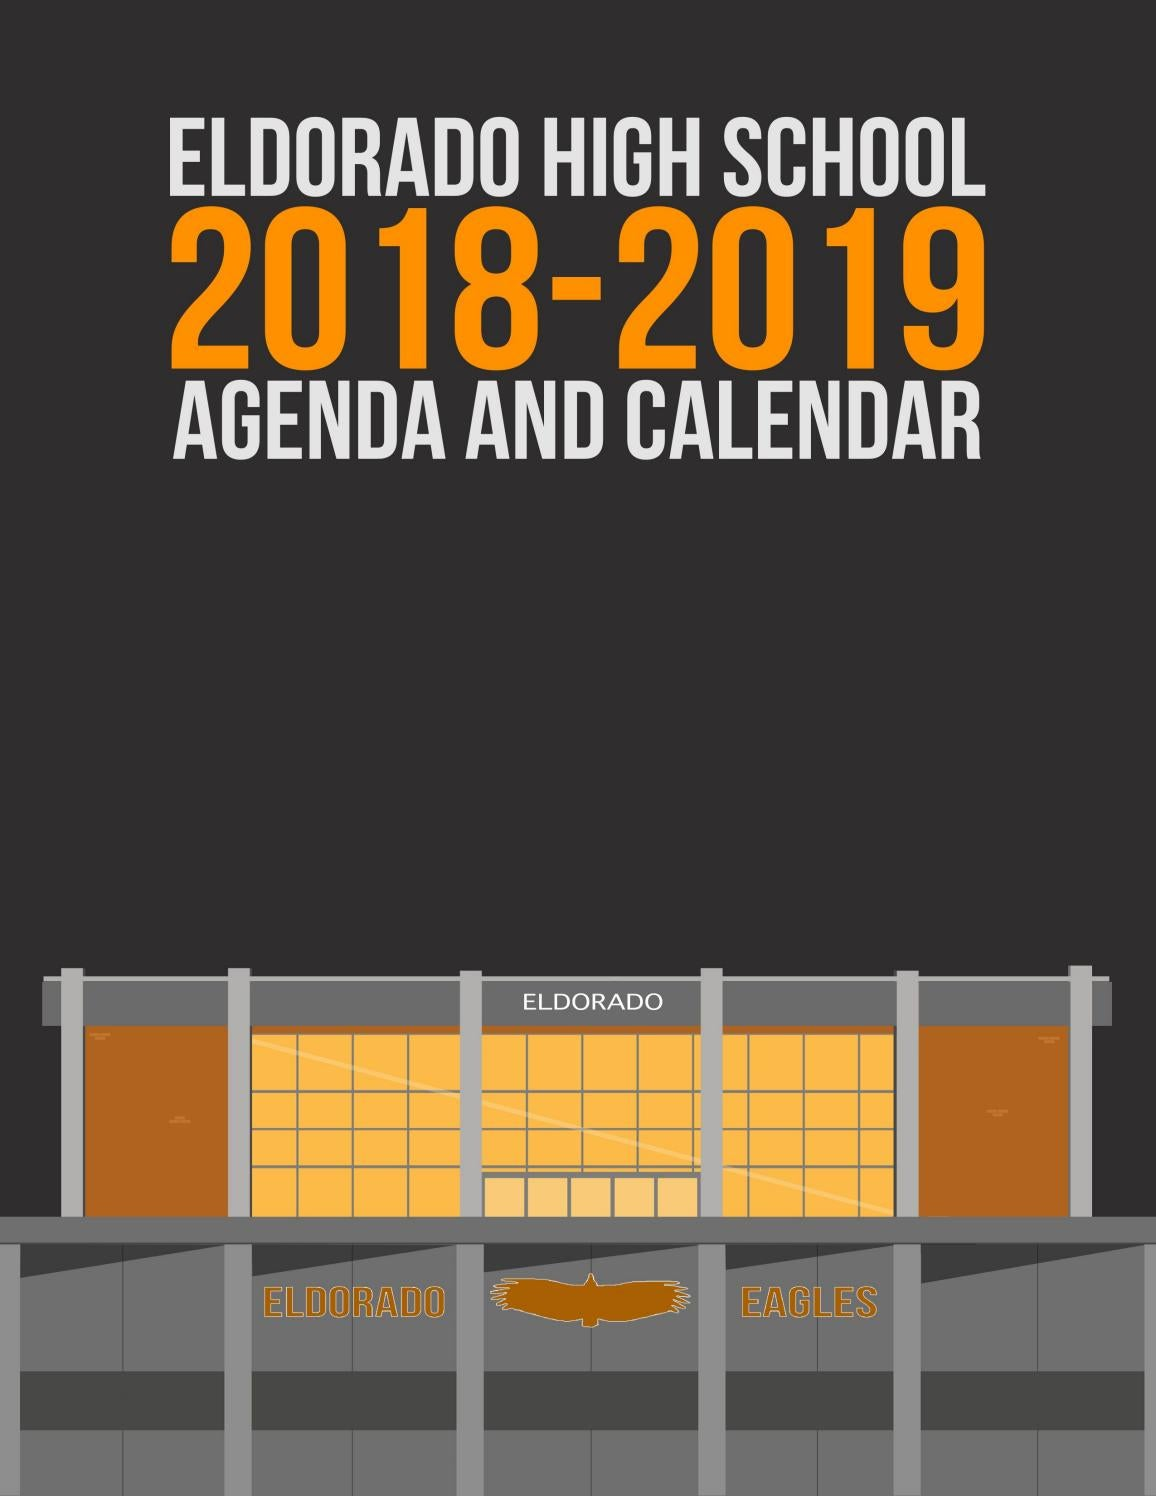 Eldorado High School Handbook and Agenda (2018-2019) by